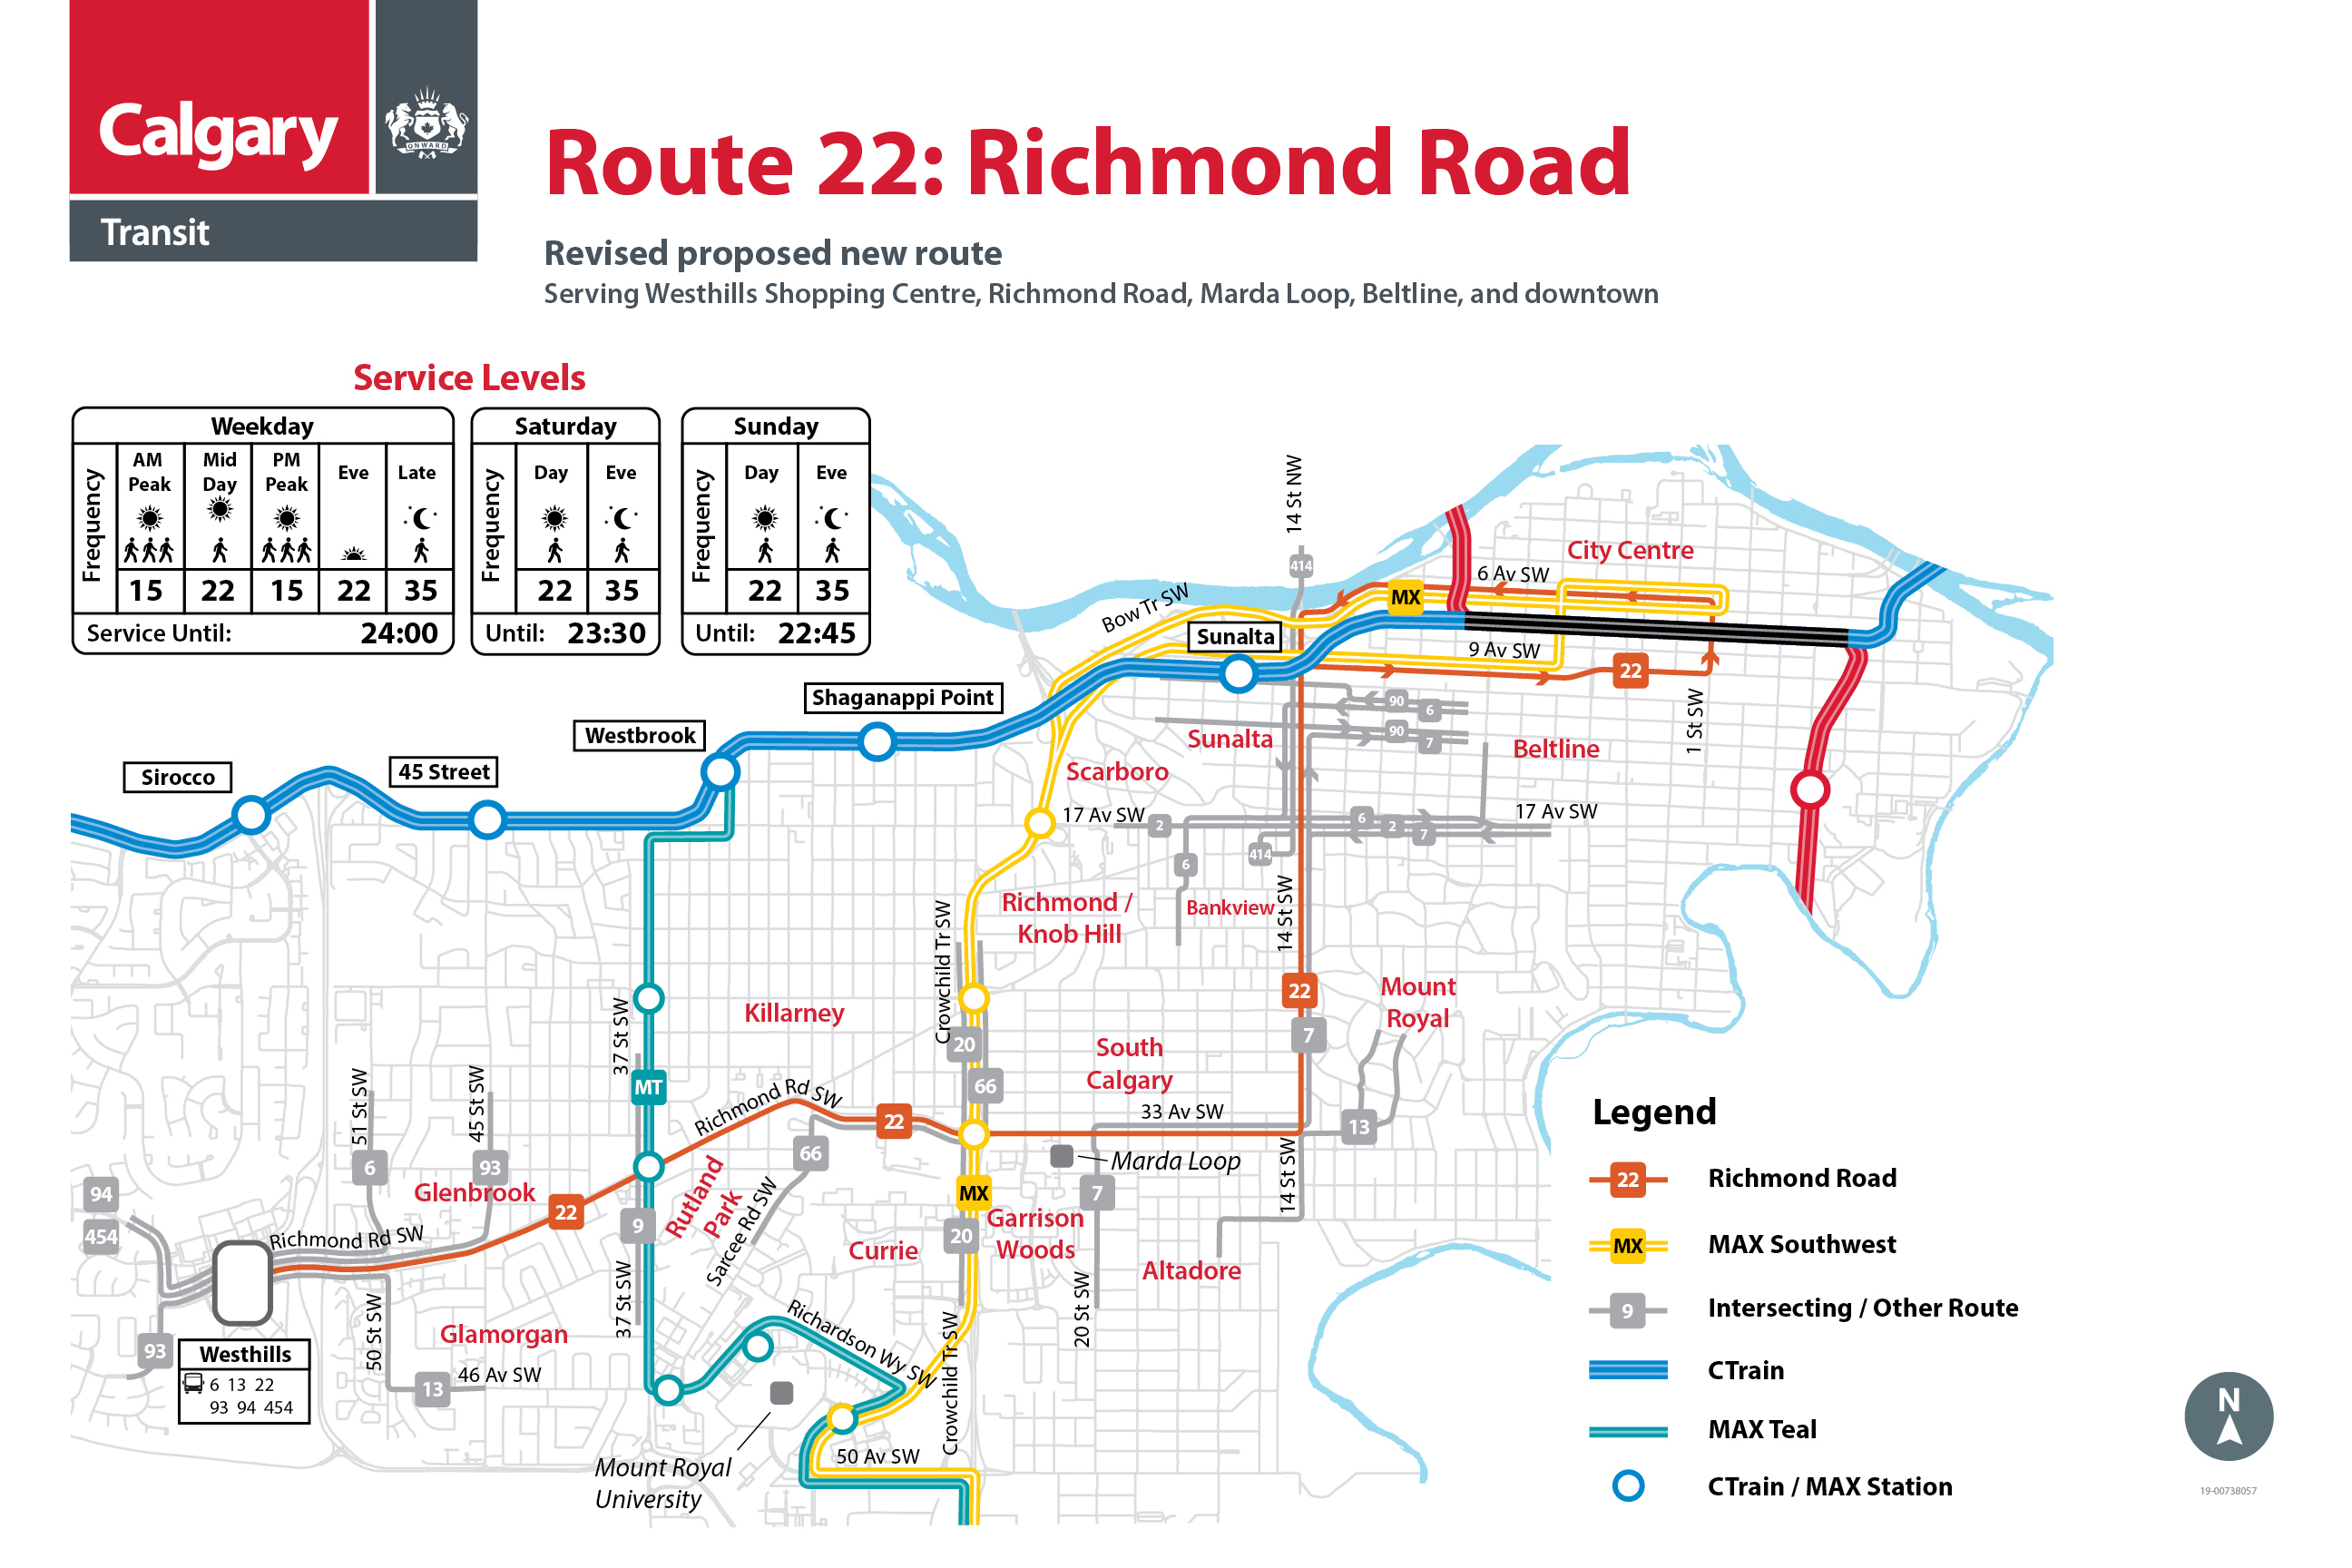 Revised Route 22